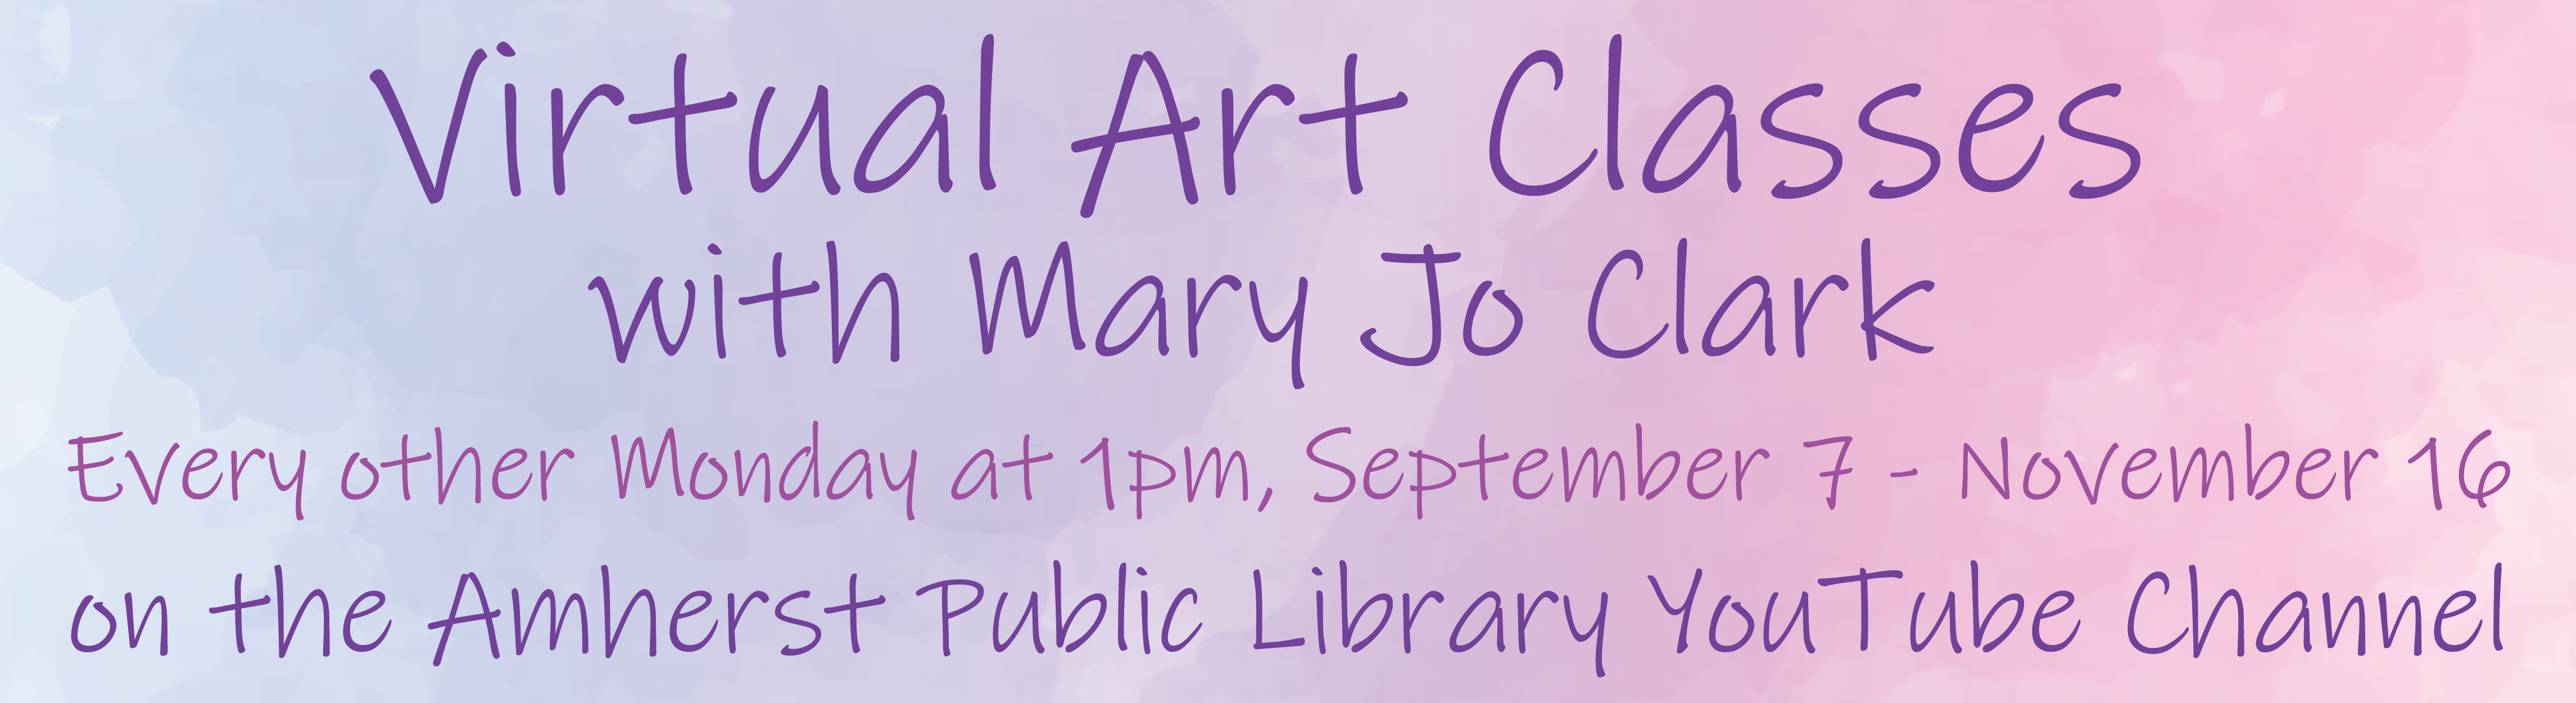 Virtual Art Classes with Mary Jo Clark